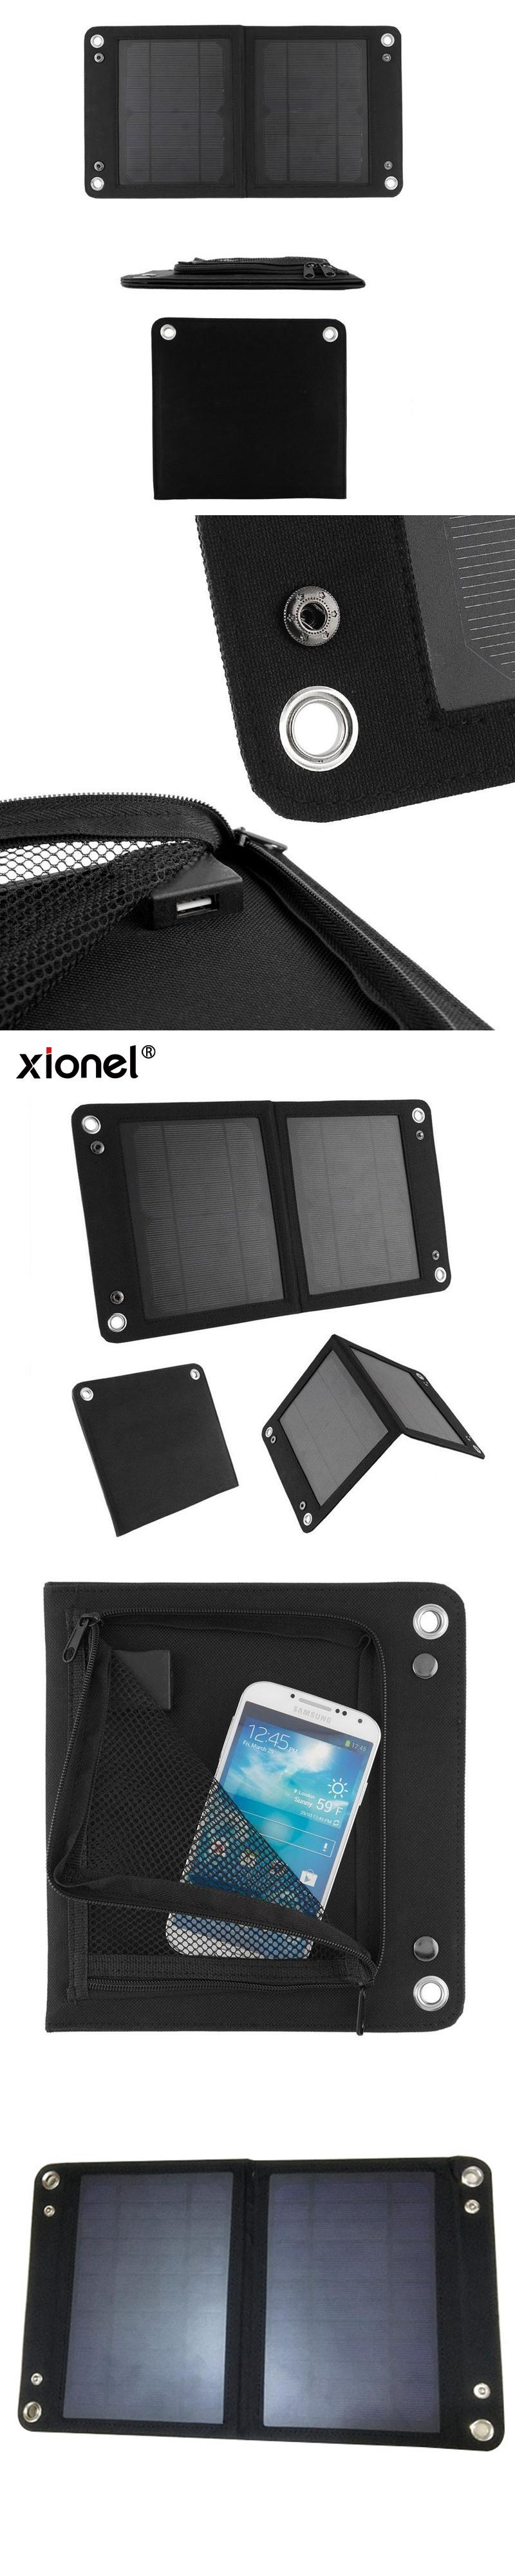 2017 hot sale xionel 7w solar charger waterproof foldable